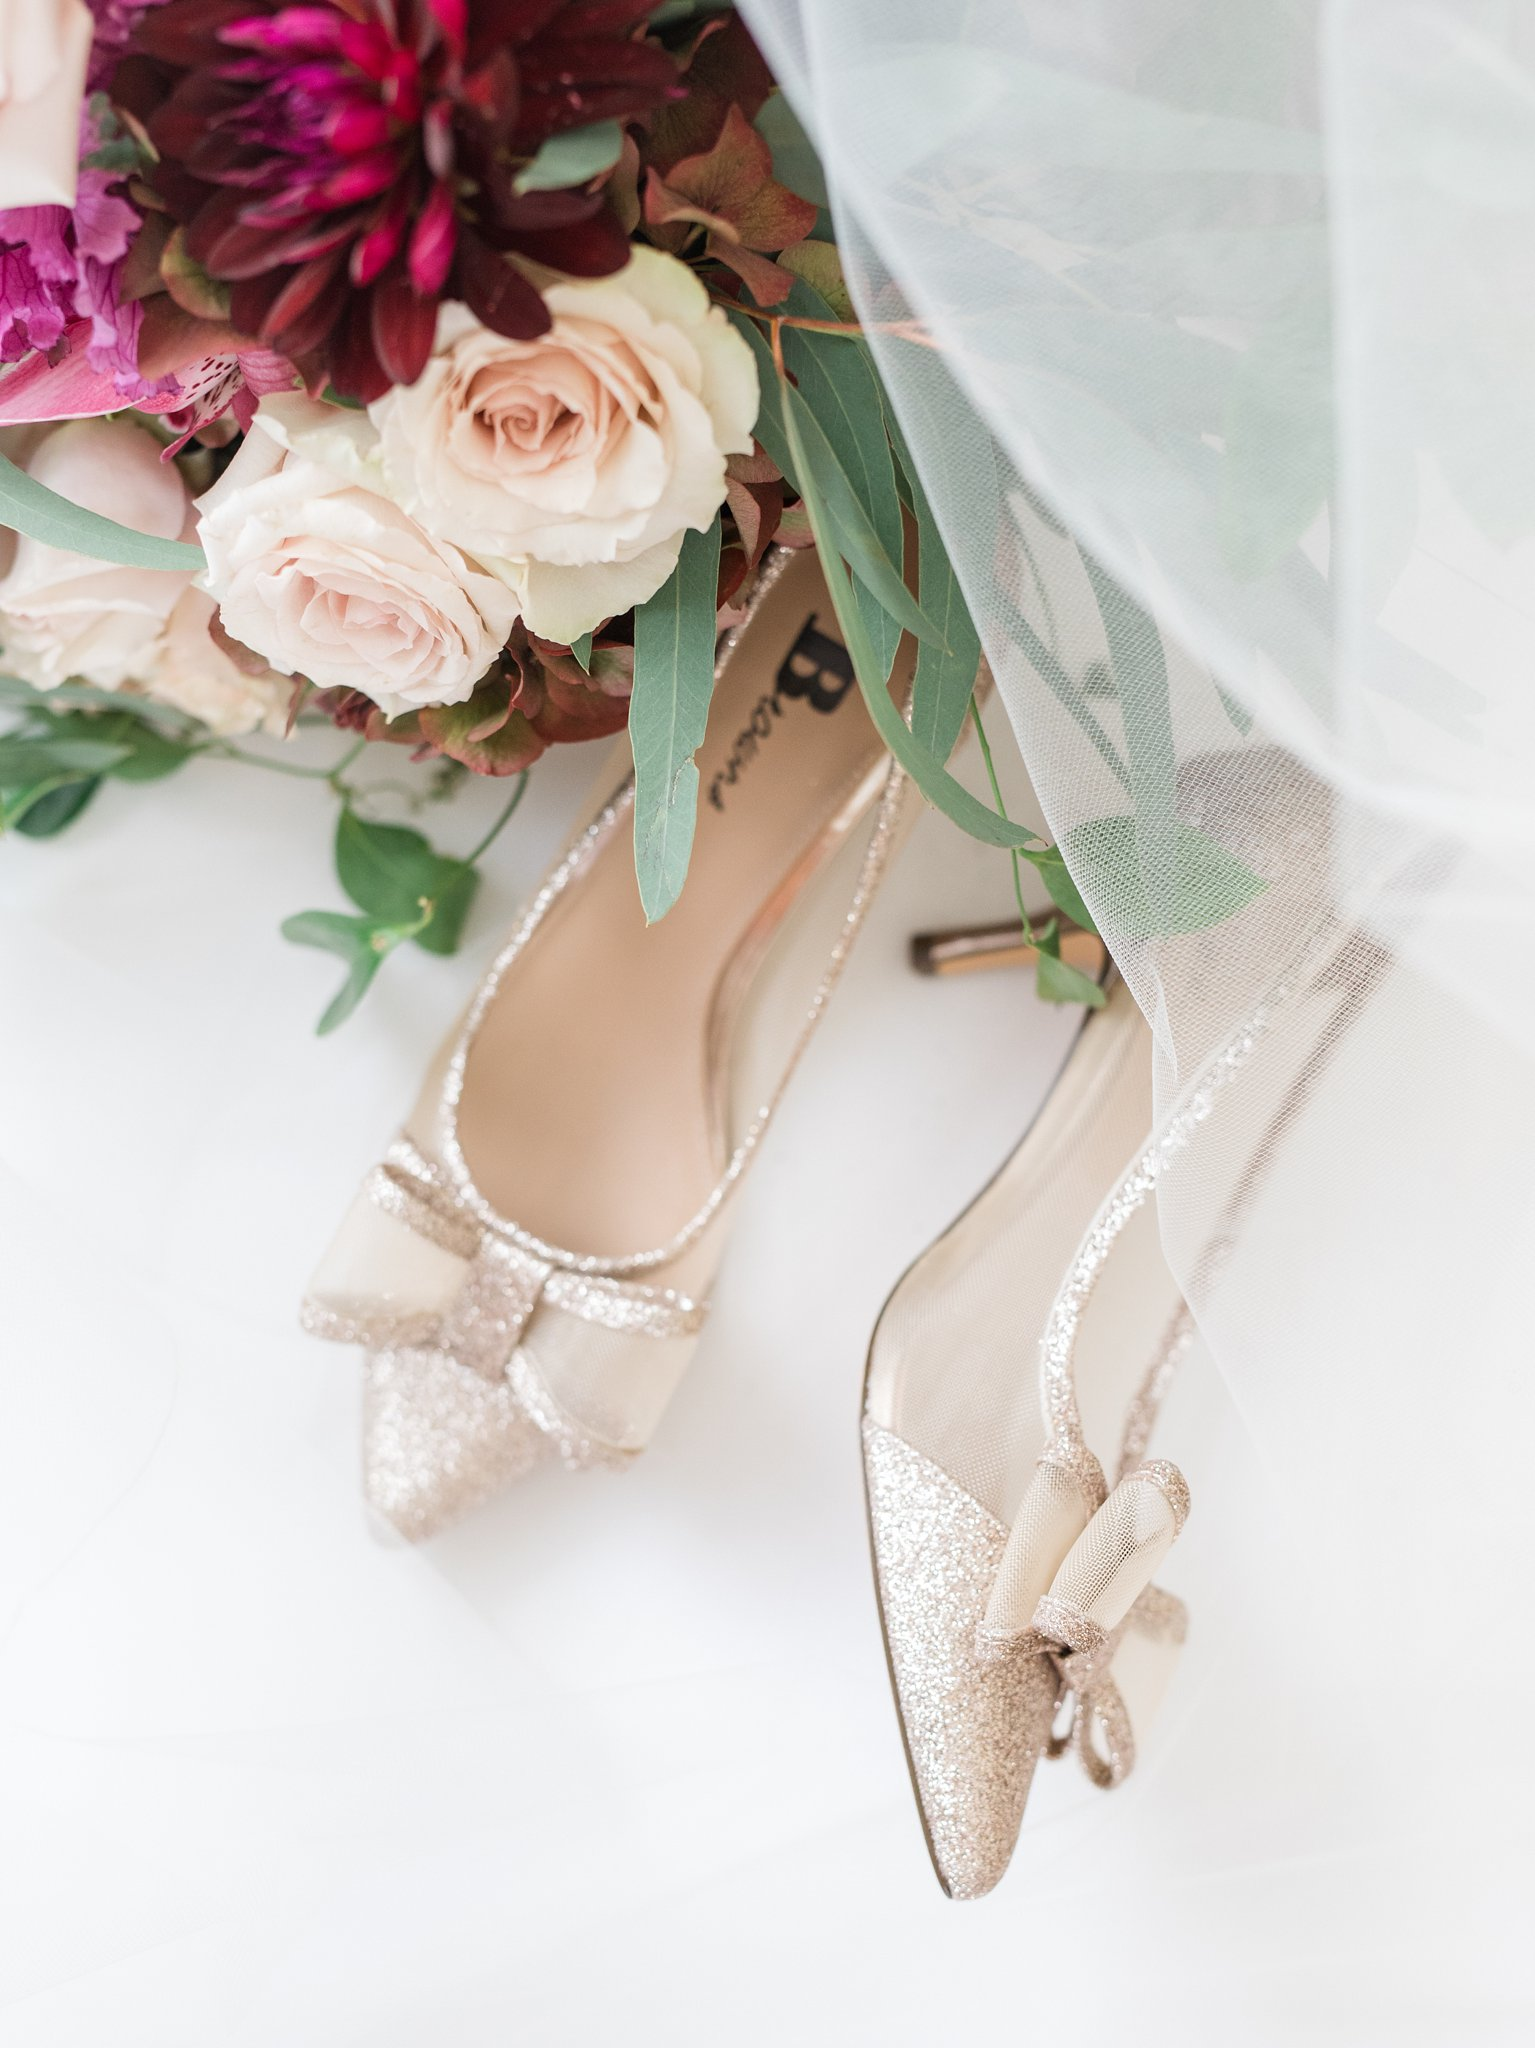 Gold wedding shoes with bow A Festive Fall Wedding at the Canadian Museum of Nature